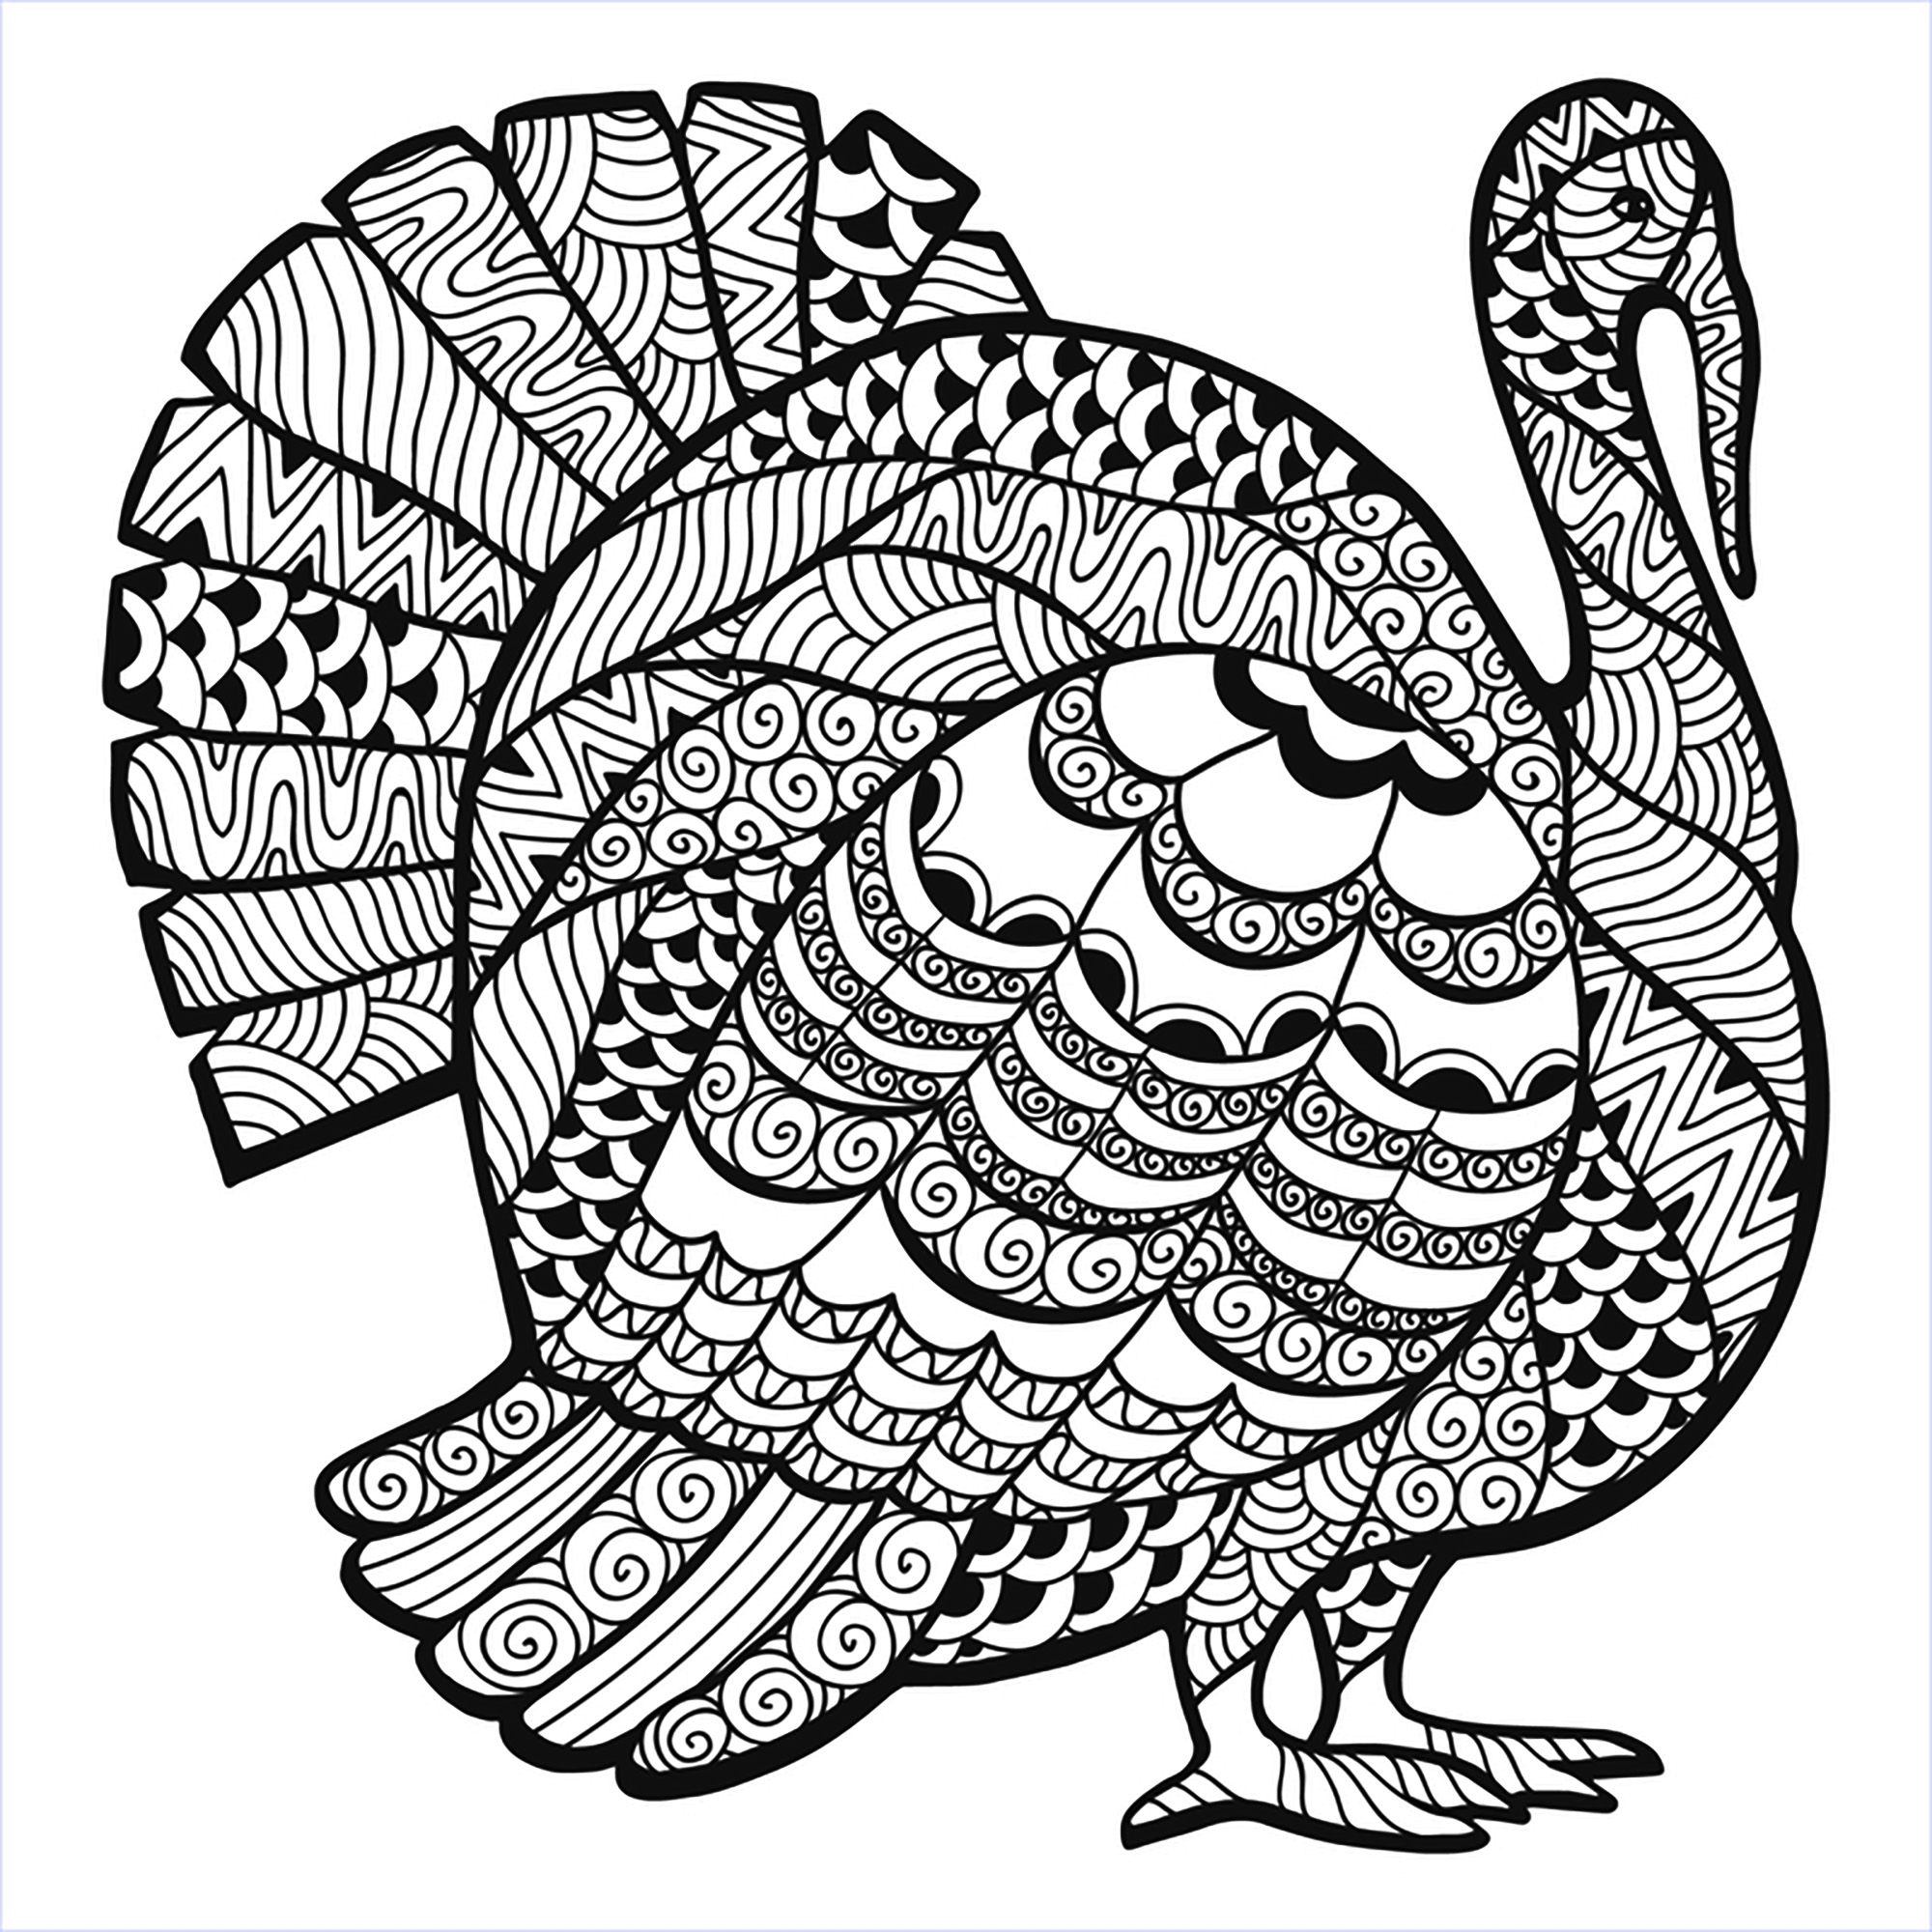 Coloring Pages For Adults: Thanksgiving Coloring Pages For Adults To Download And